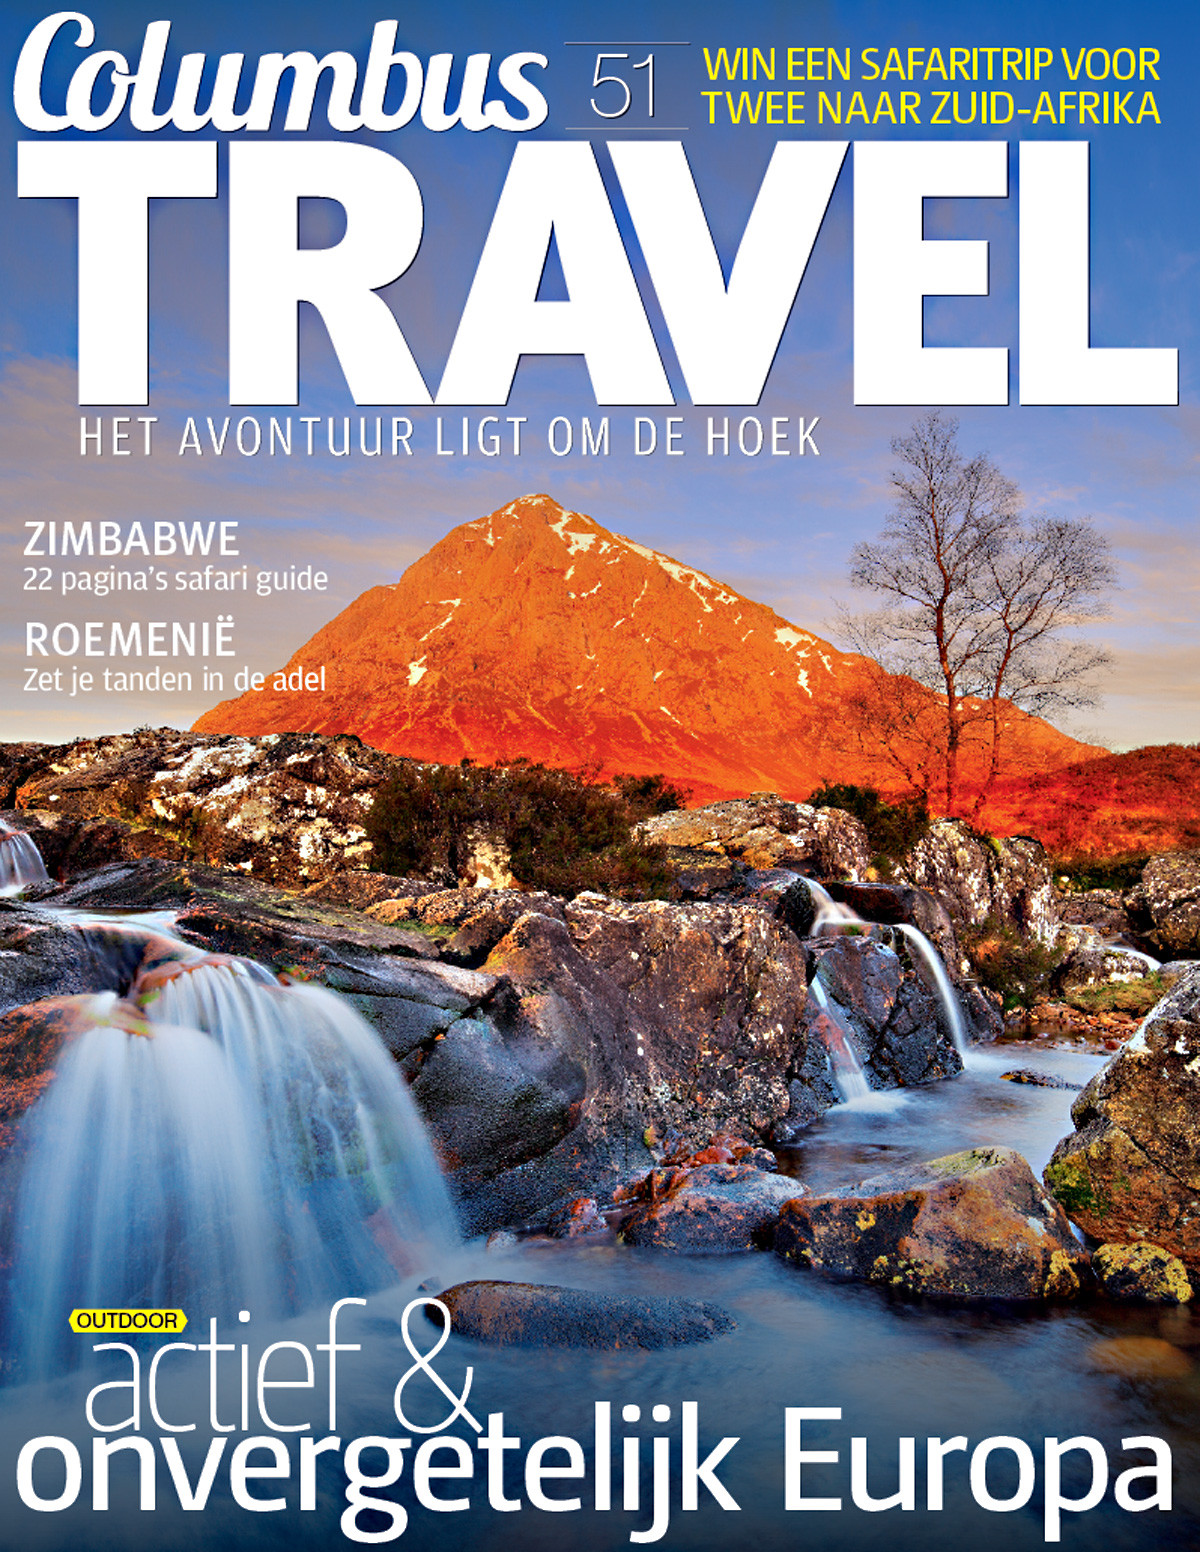 Columbus Travel magazine cover 51